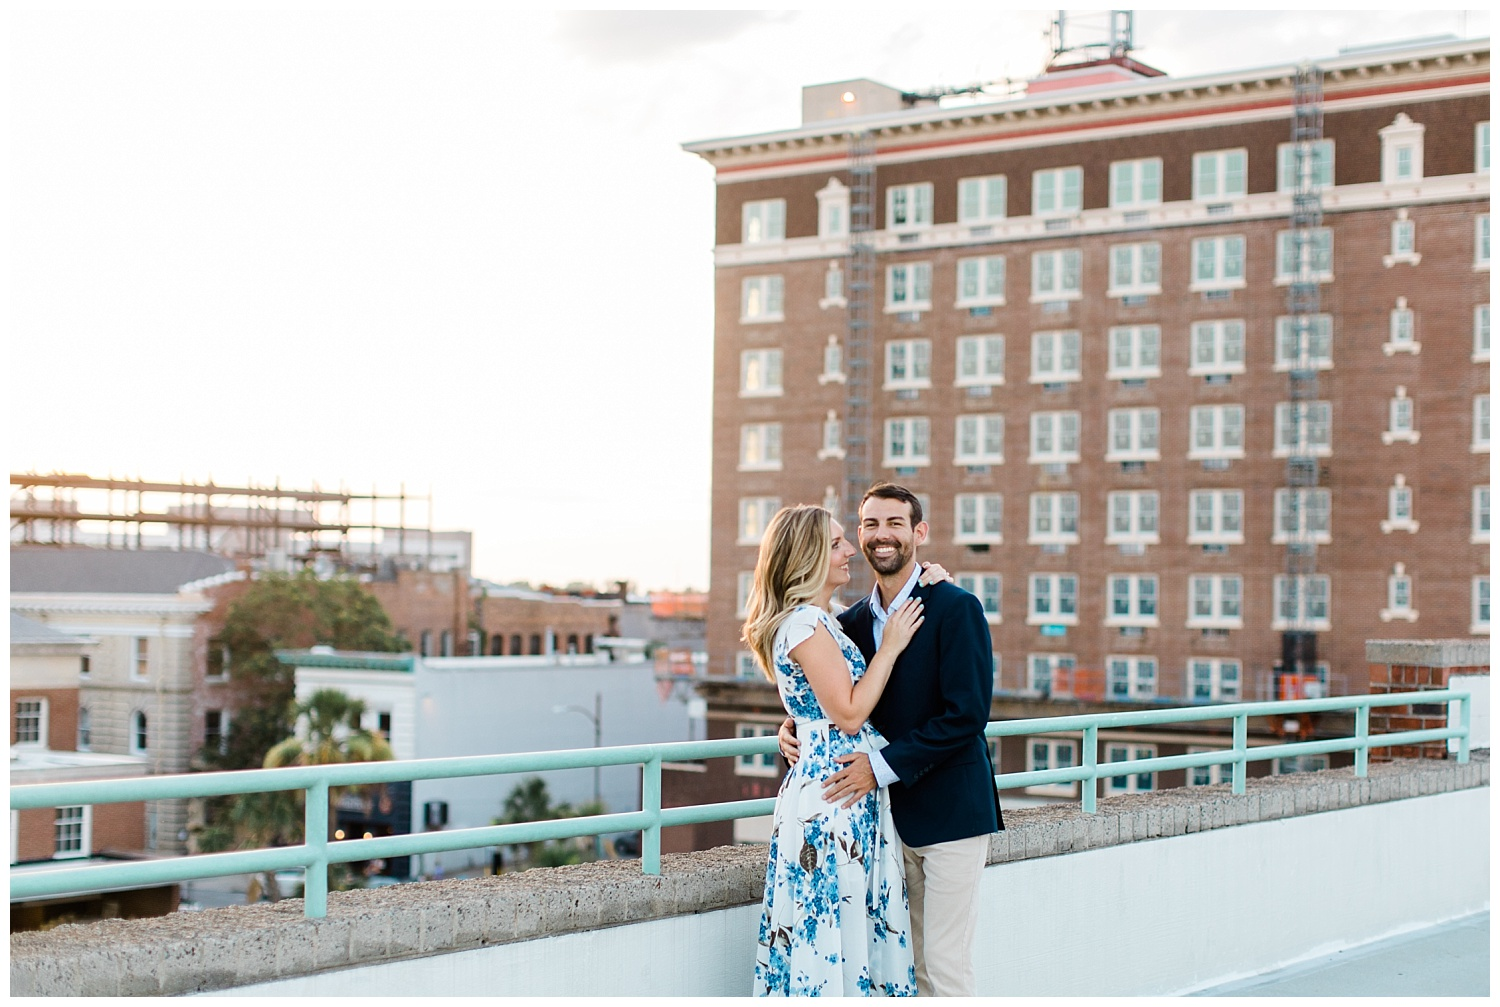 Downtown Wilmington NC Engagement_Erin L. Taylor Photography_0017.jpg